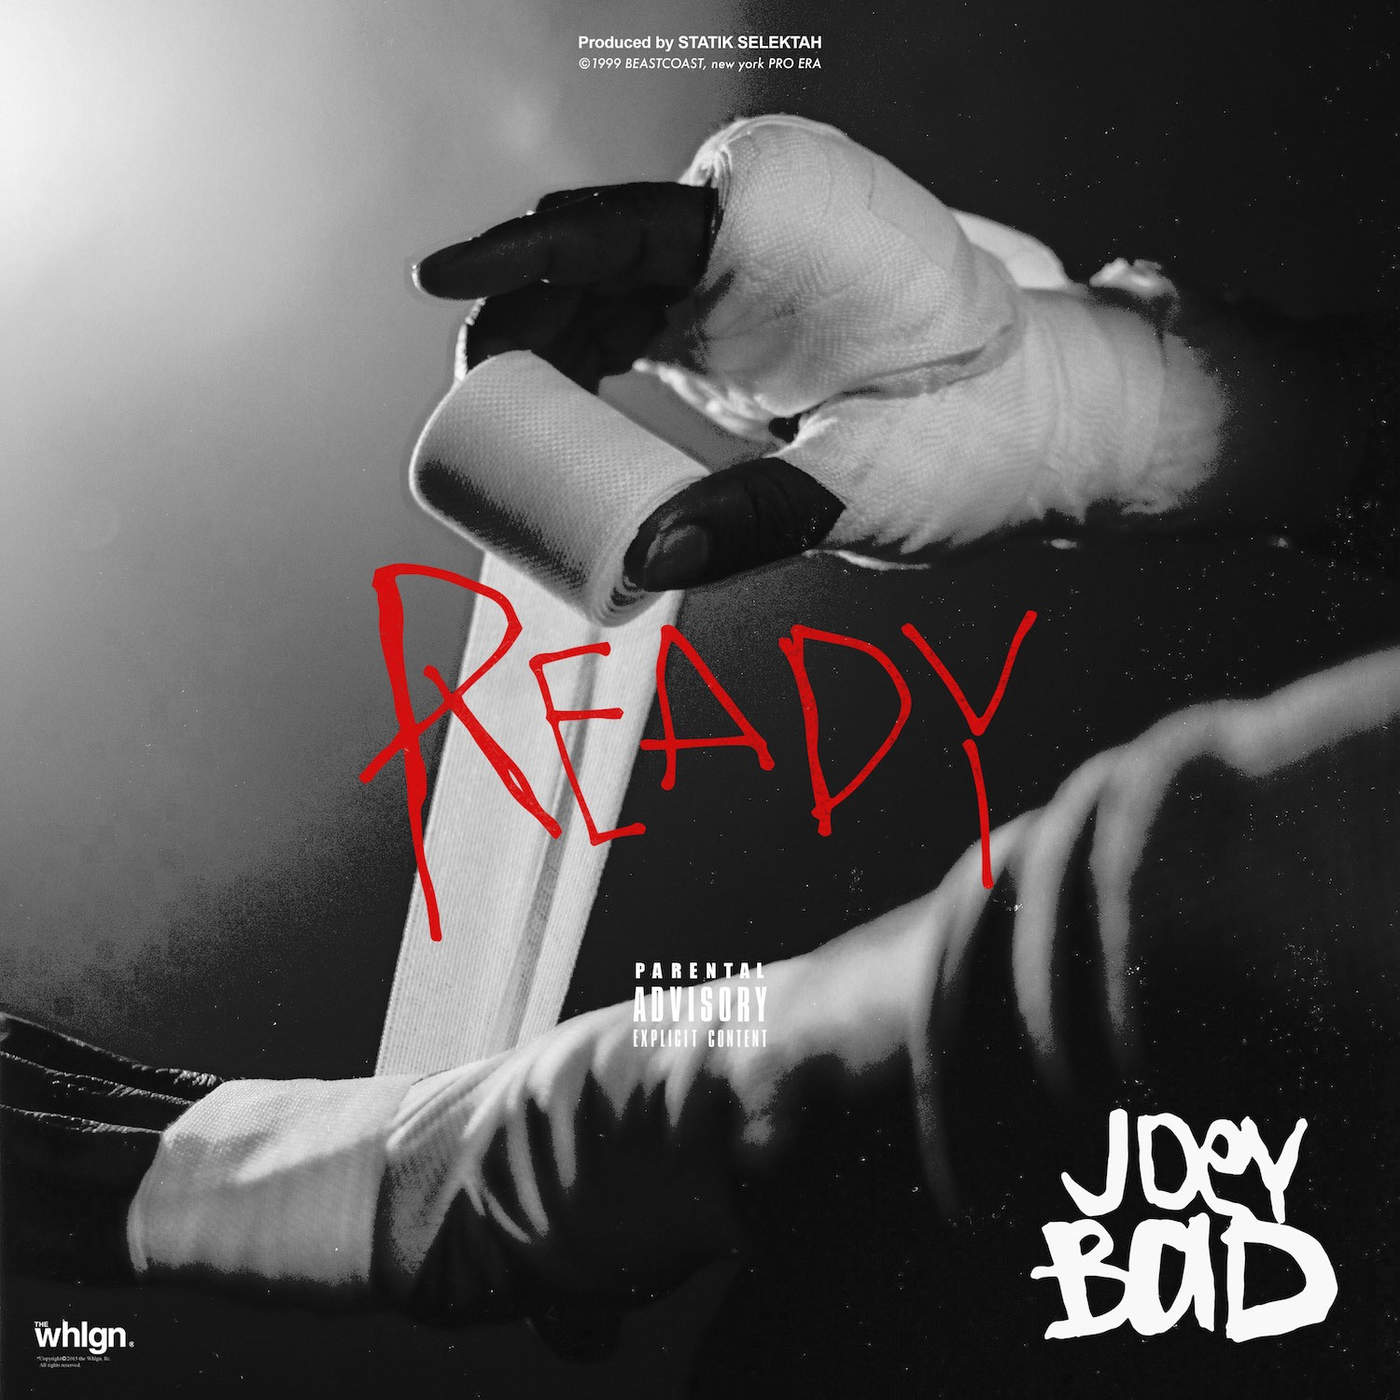 Joey Bada$$ - Ready - Single Cover